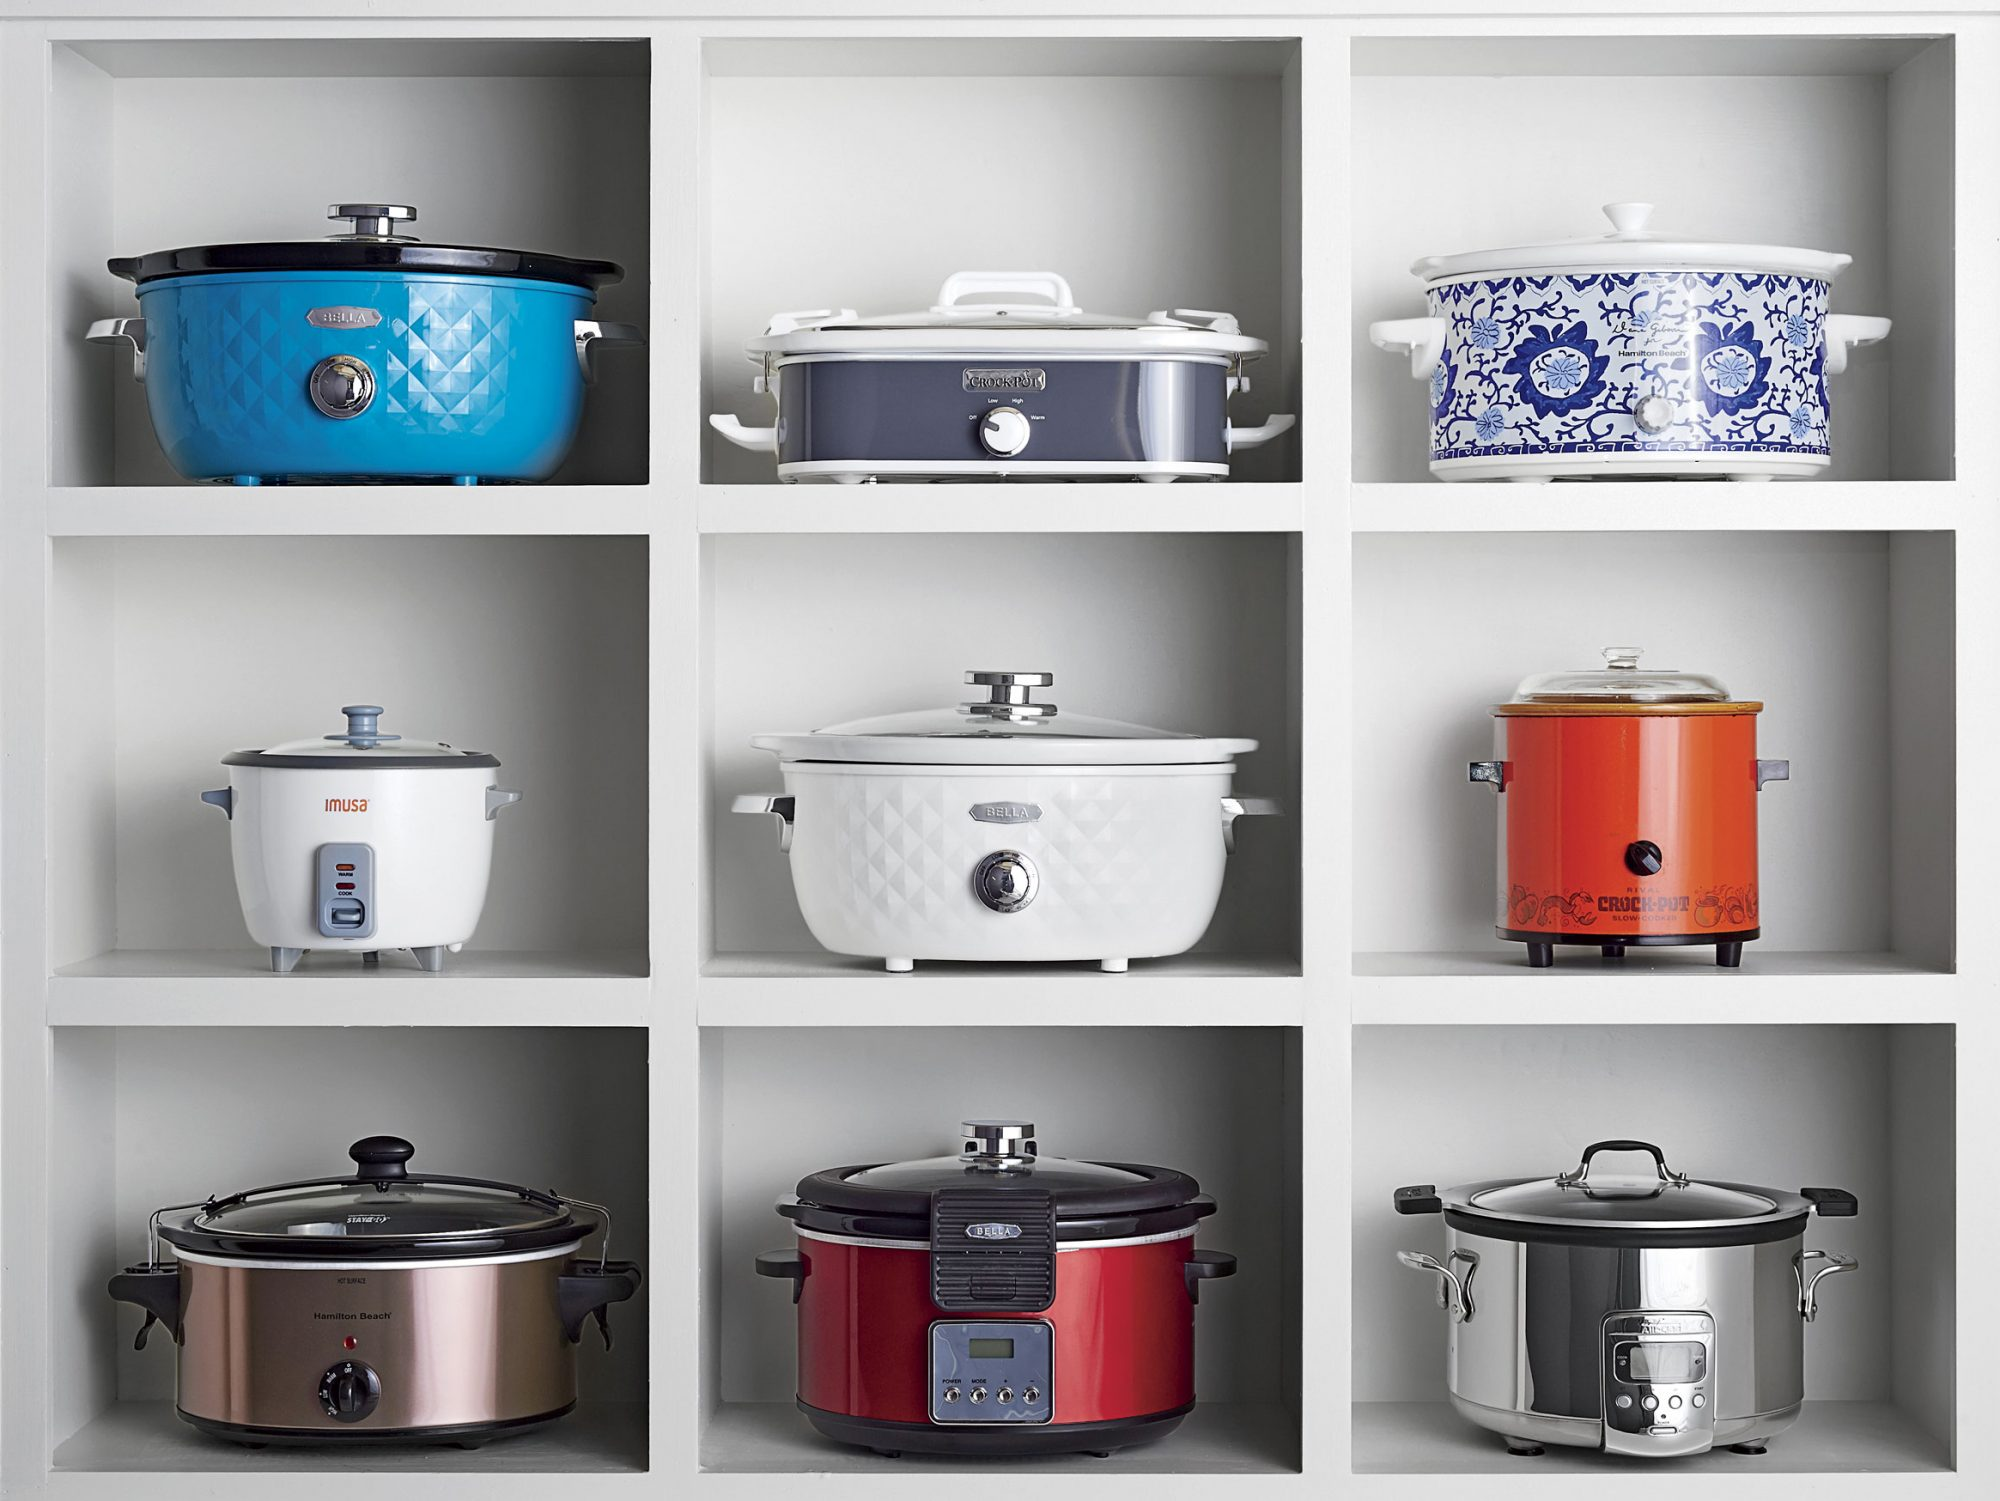 Wall of Slow Cookers